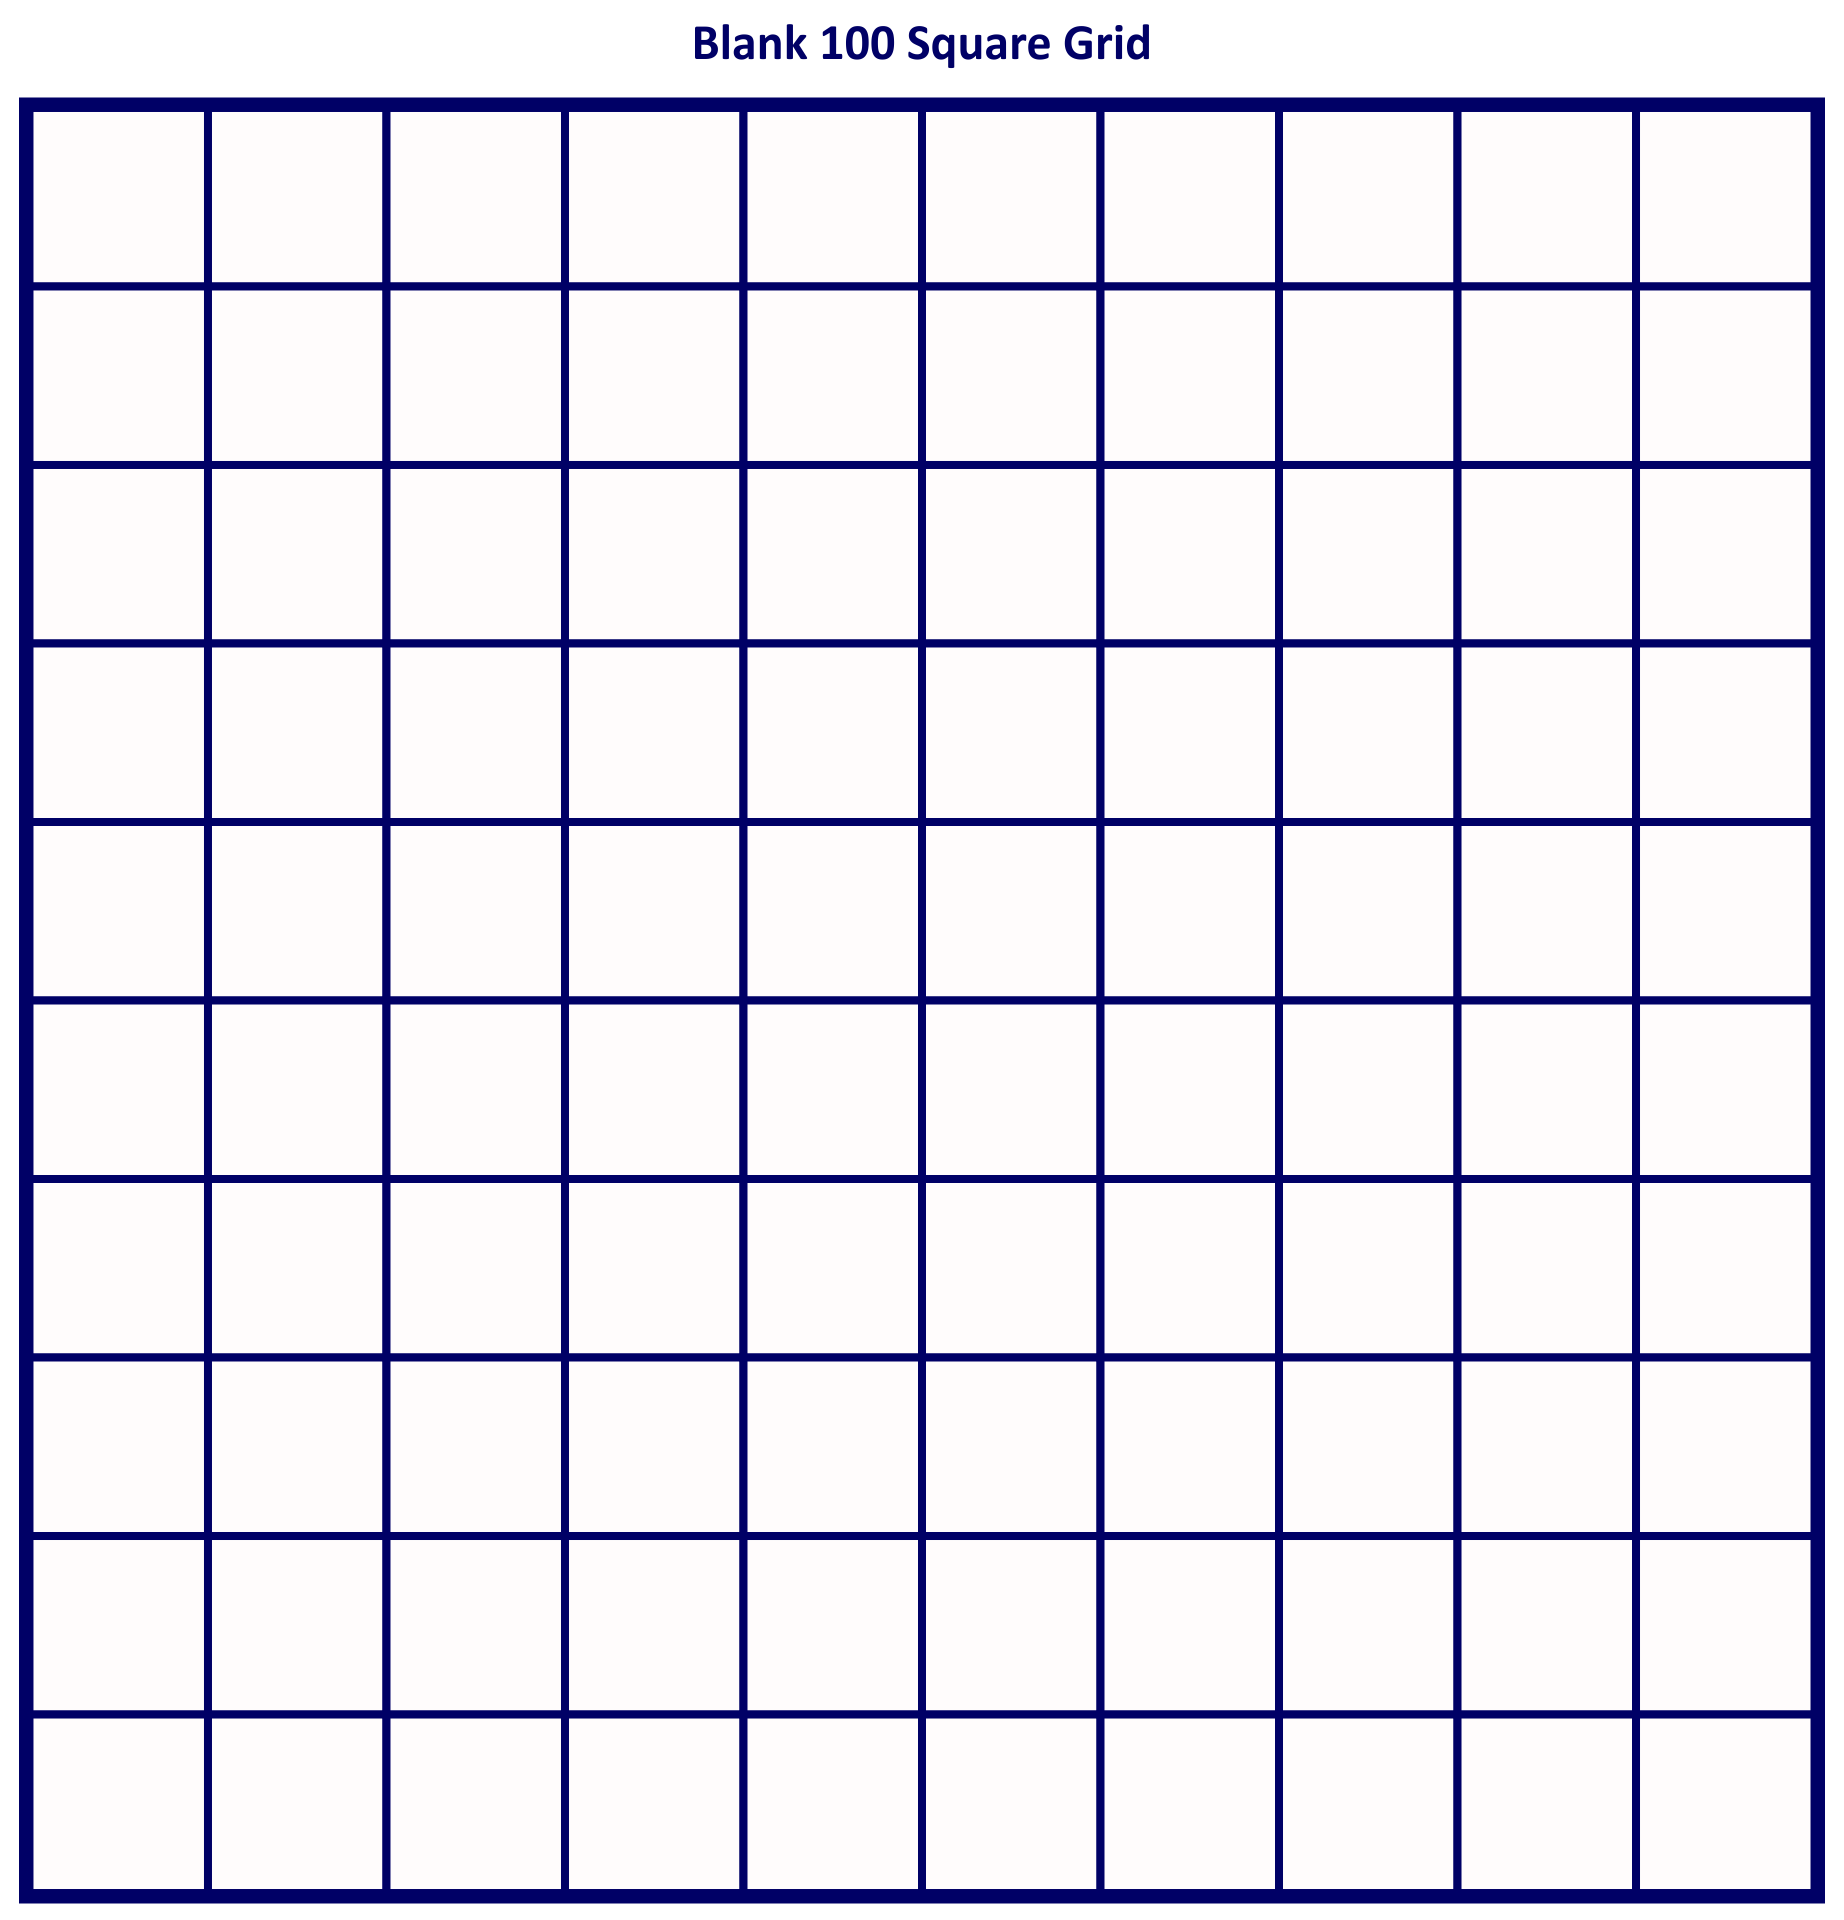 Best Images of Printable 100 Square Grid - Grid with 100 Squares ...